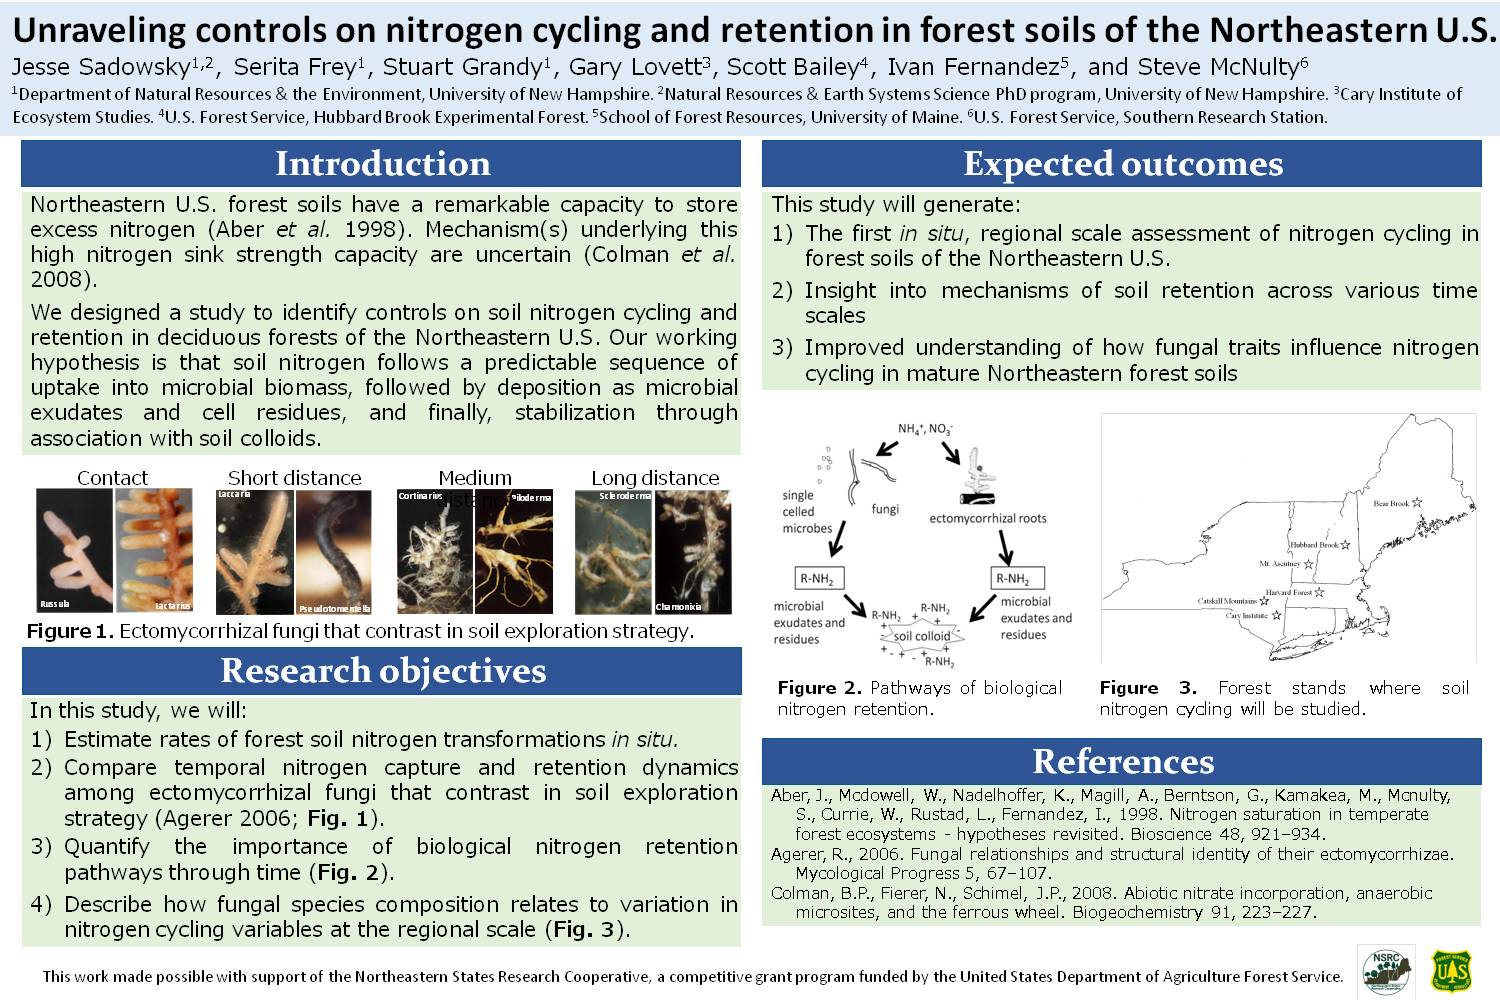 Unraveling Controls On Nitrogen Cycling And Retention In Forest Soils Of The Northeastern U.S. by sadowsk